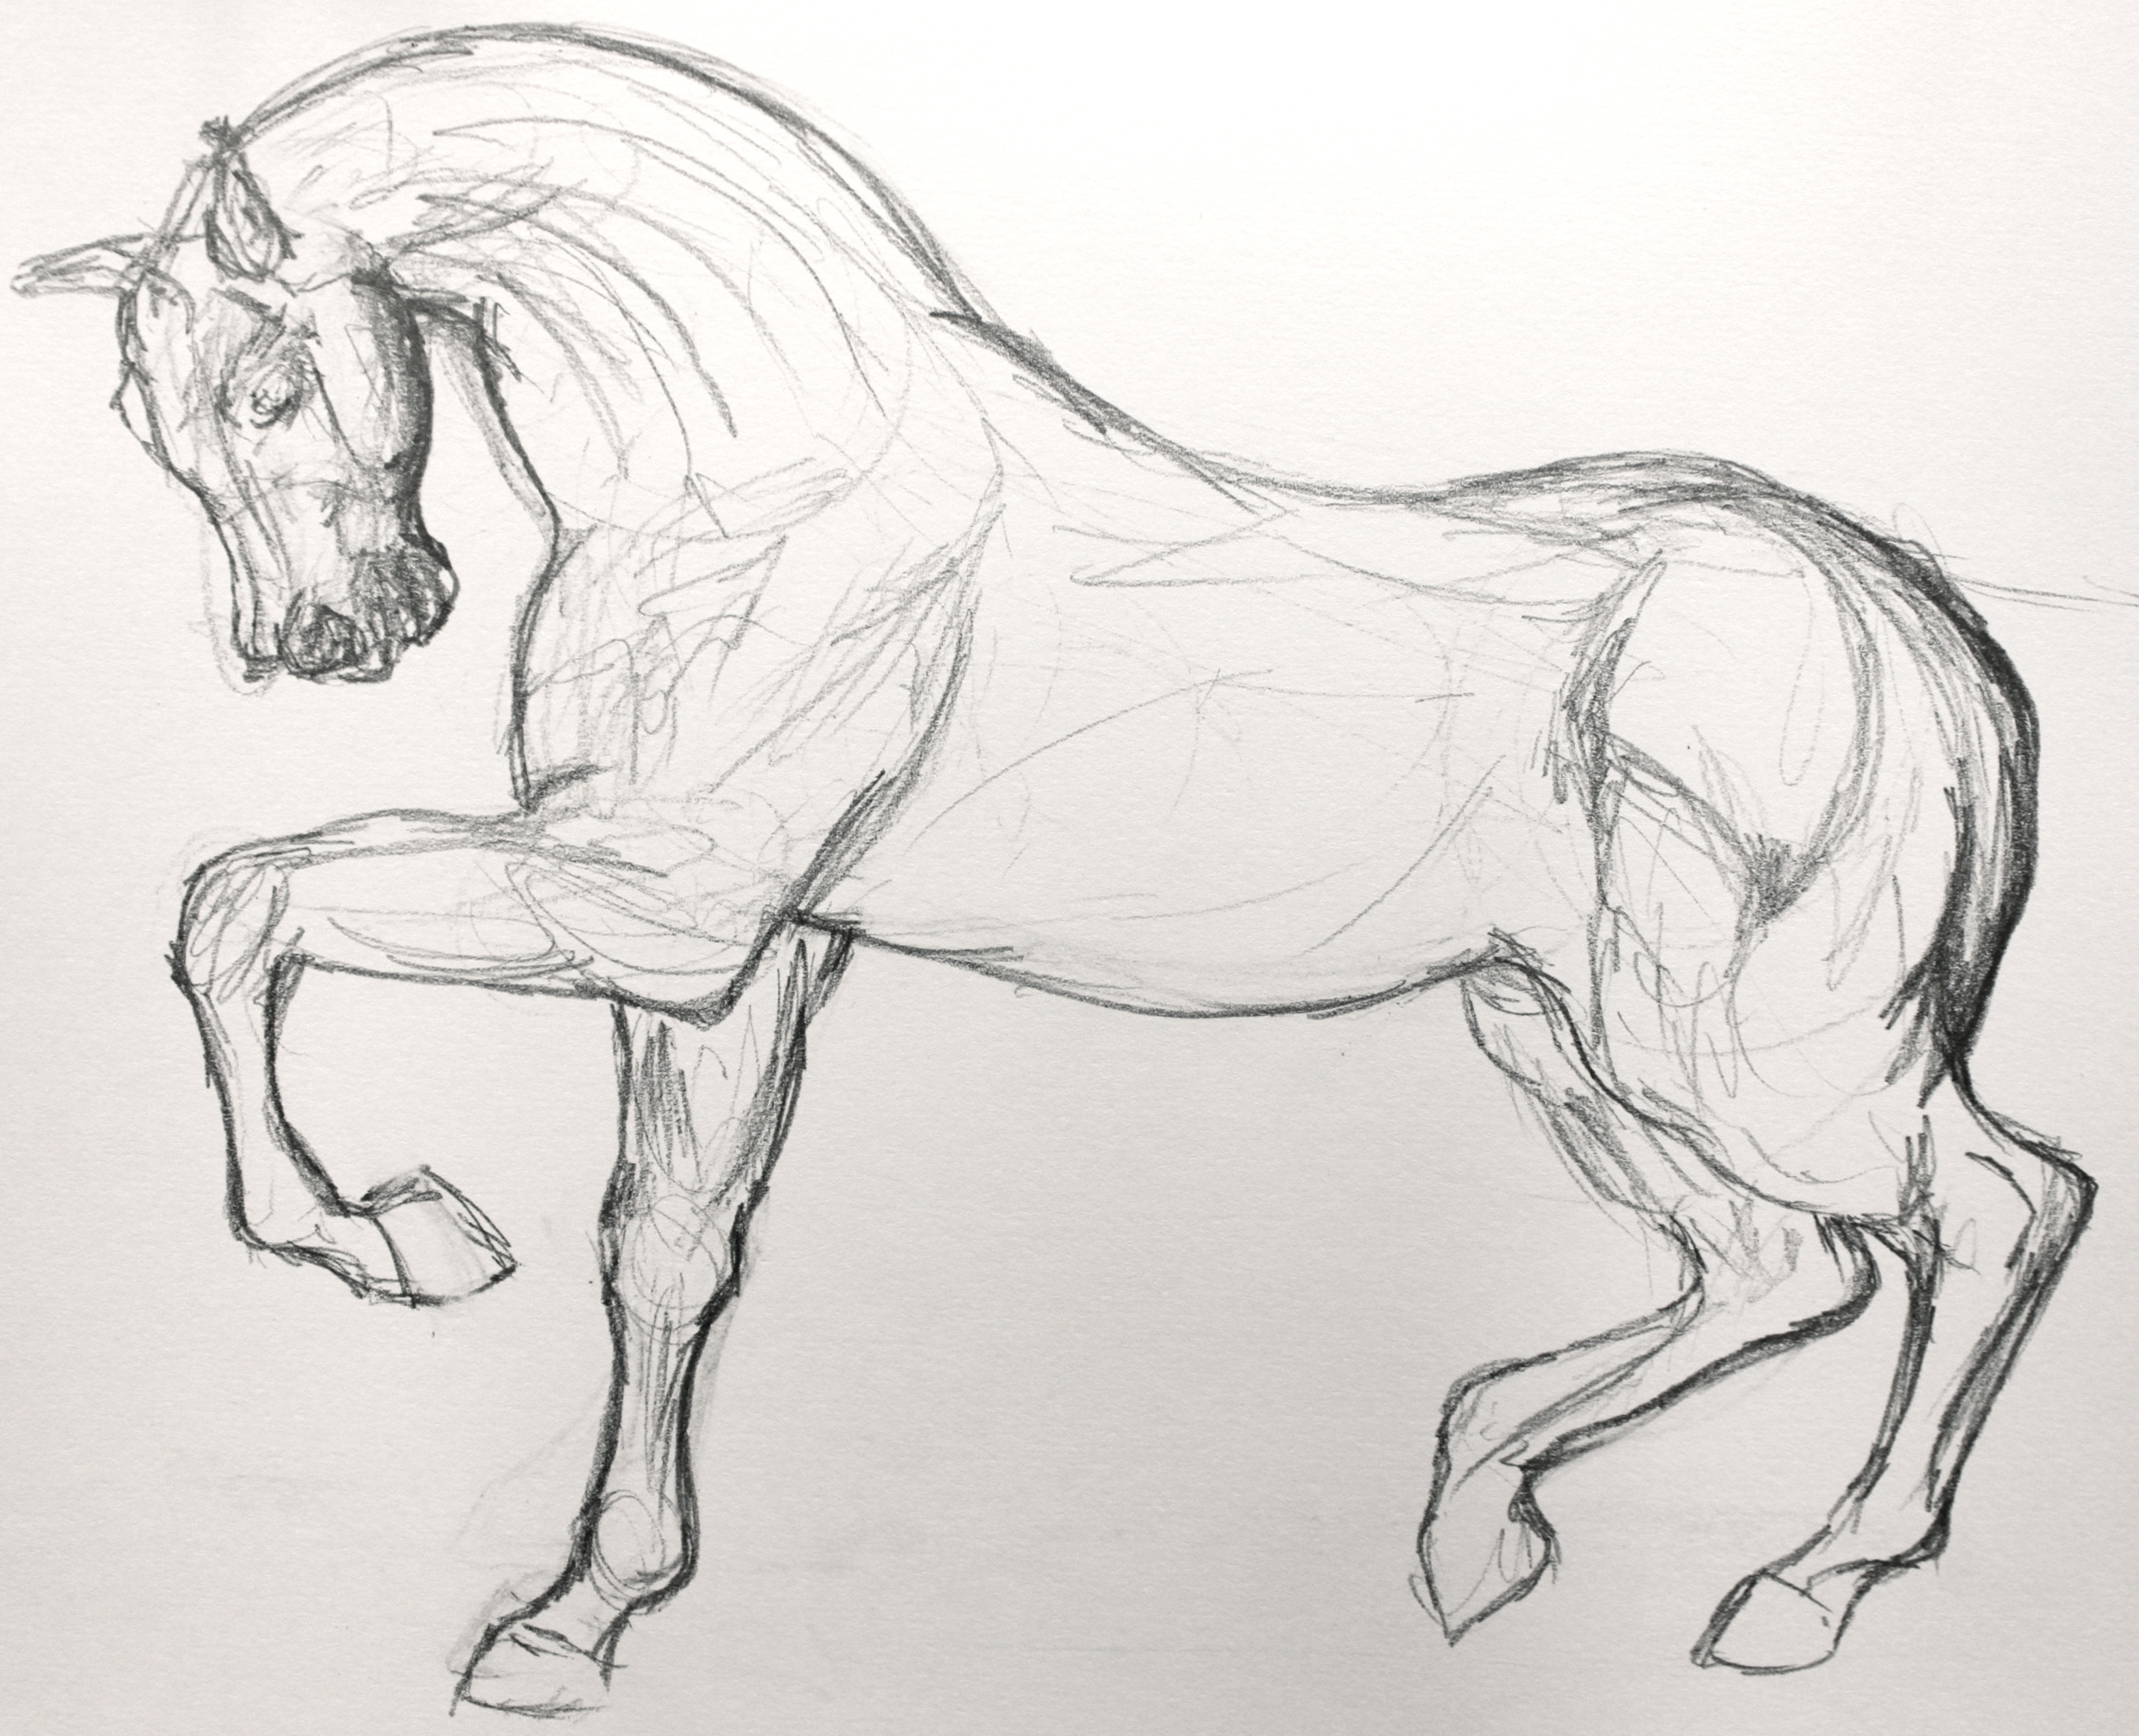 Drawn horse Process Horse  Piece: Personal